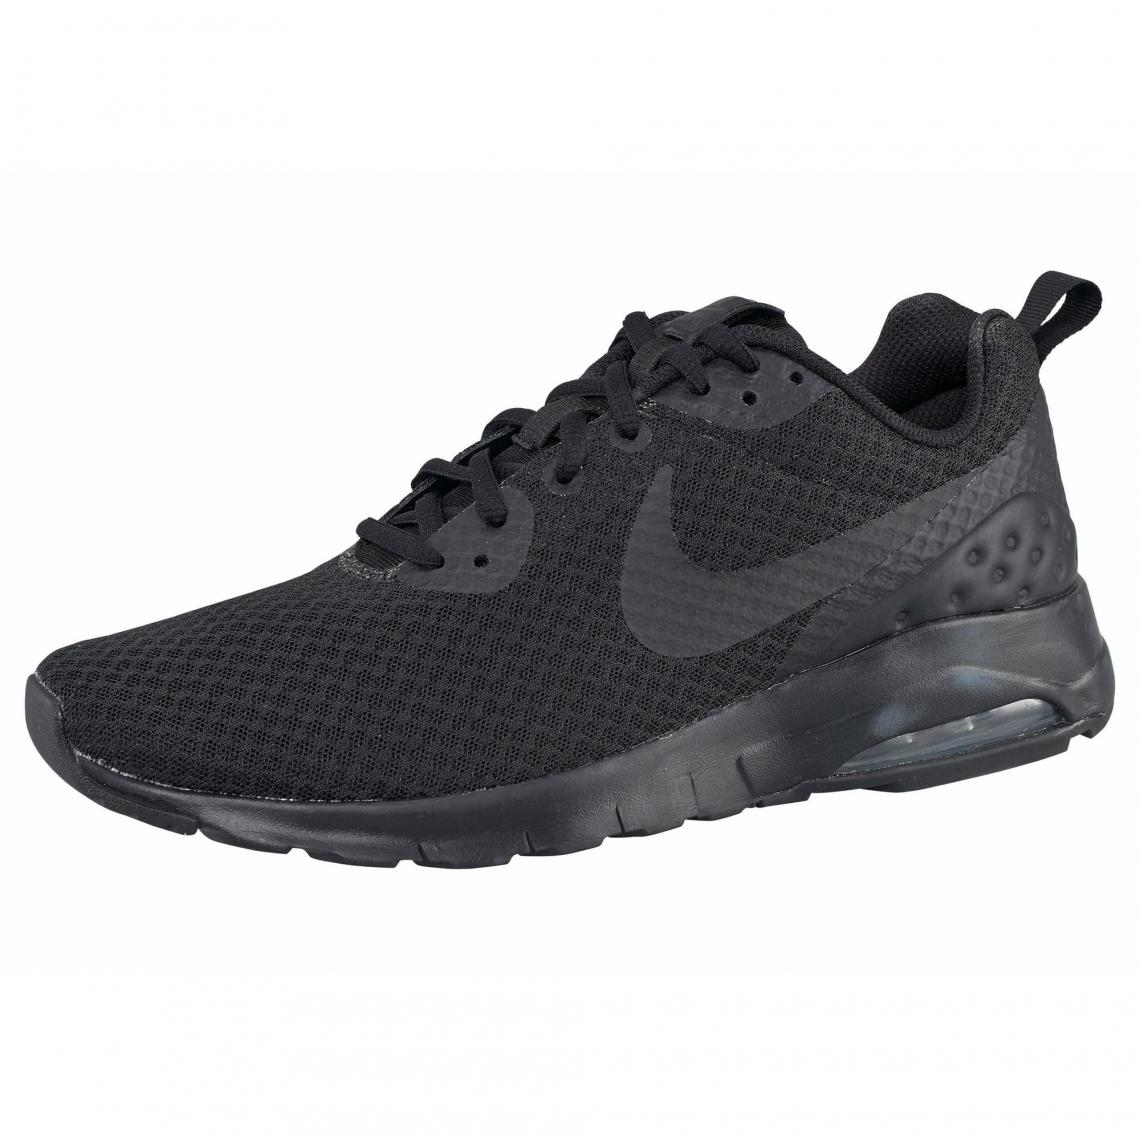 best website 643c2 3991e Nike Air Max Motion LW chaussures de running homme - Noir Nike Homme